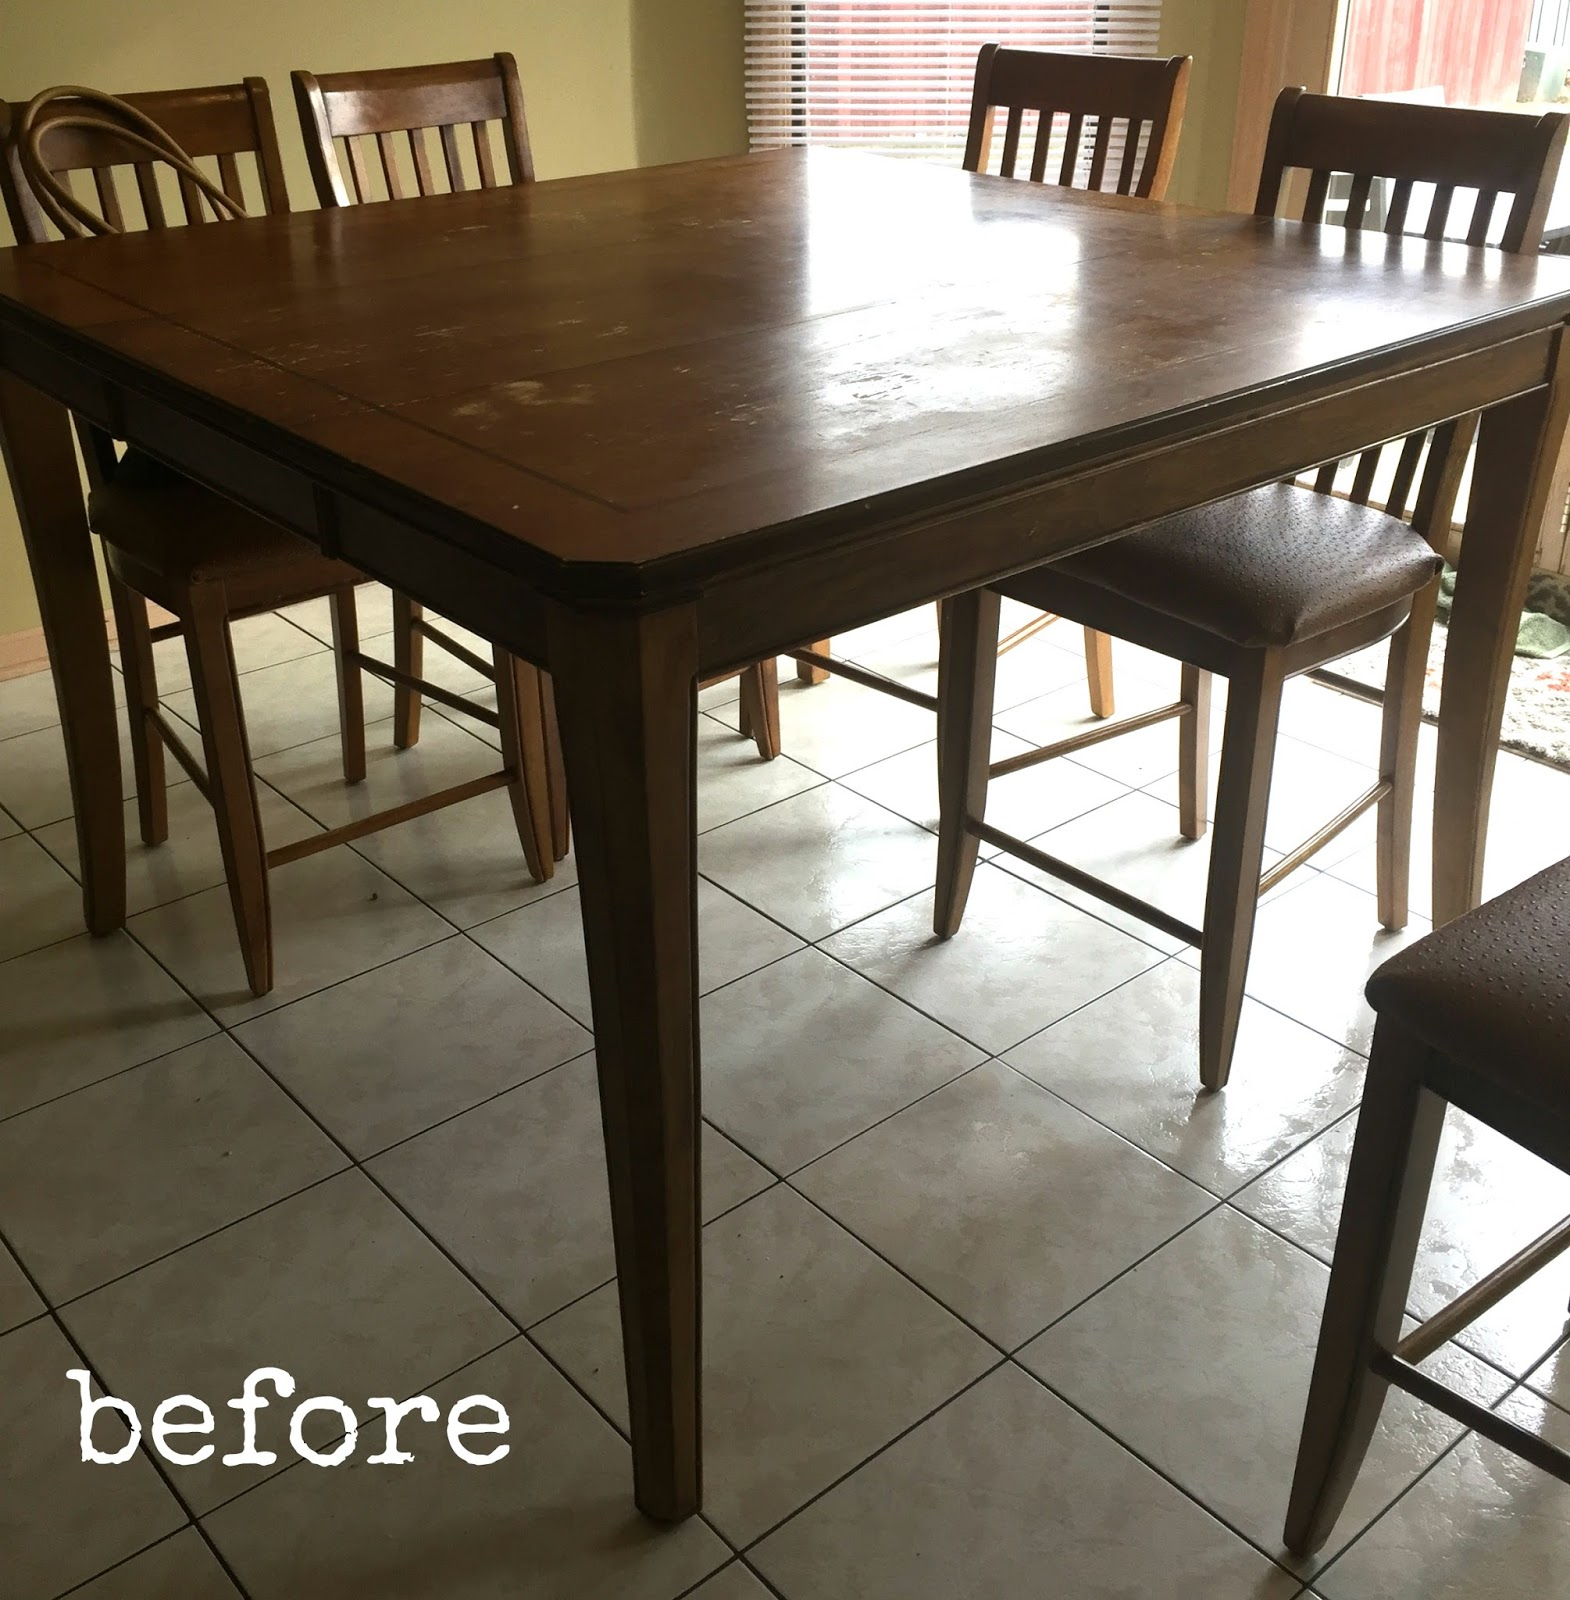 the lucky winner contacted me early in and we went right to work bringing life back to her much used dining table